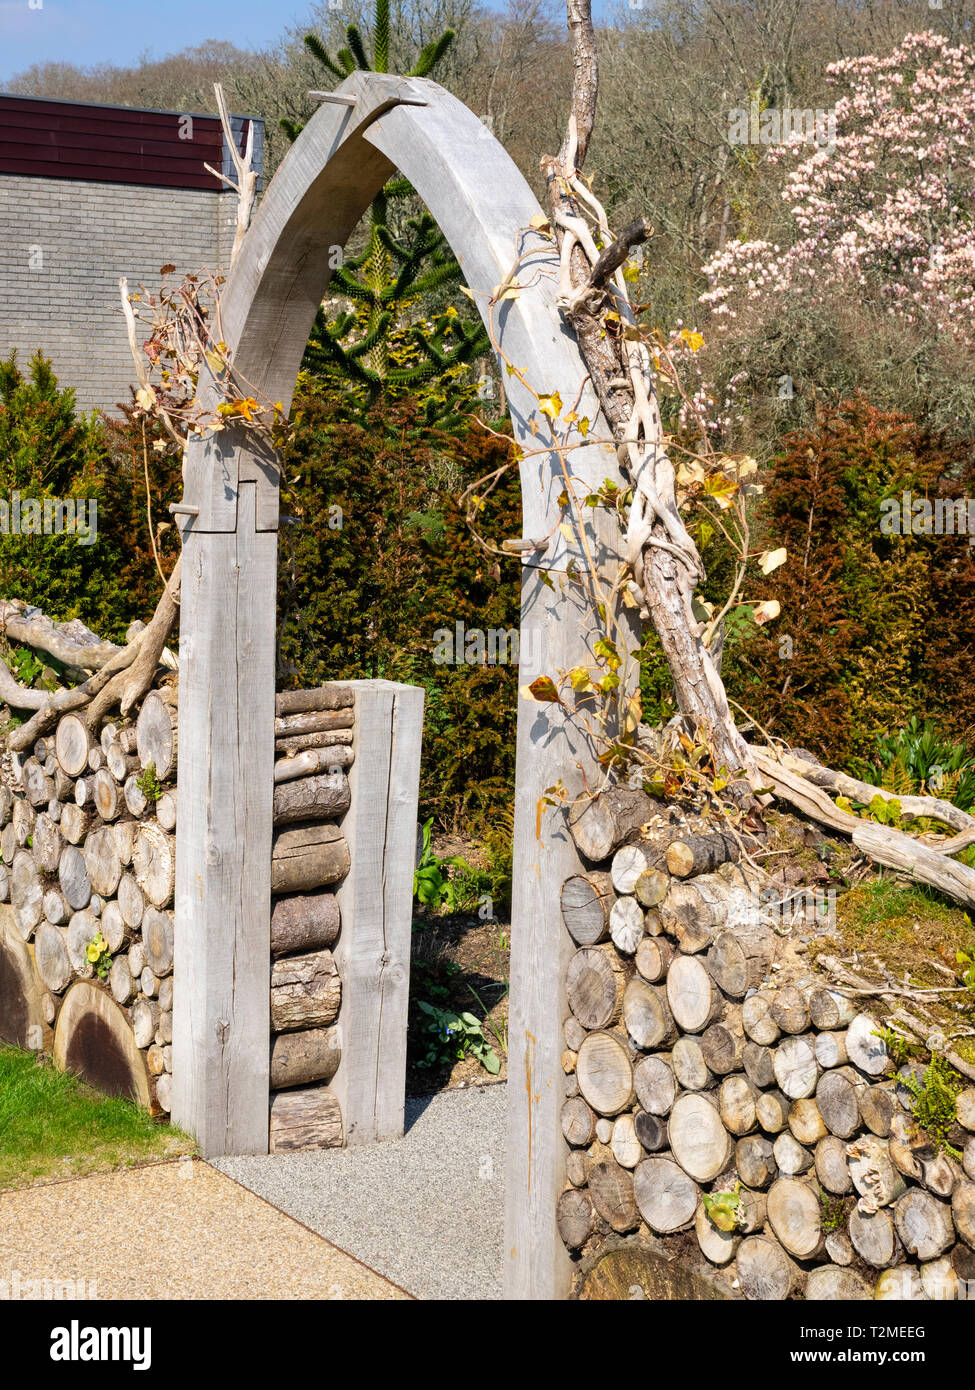 Cut log wall and green oak archway on the front of the Millenium Garden at Buckfast Abbey, Devon, UK - Stock Image